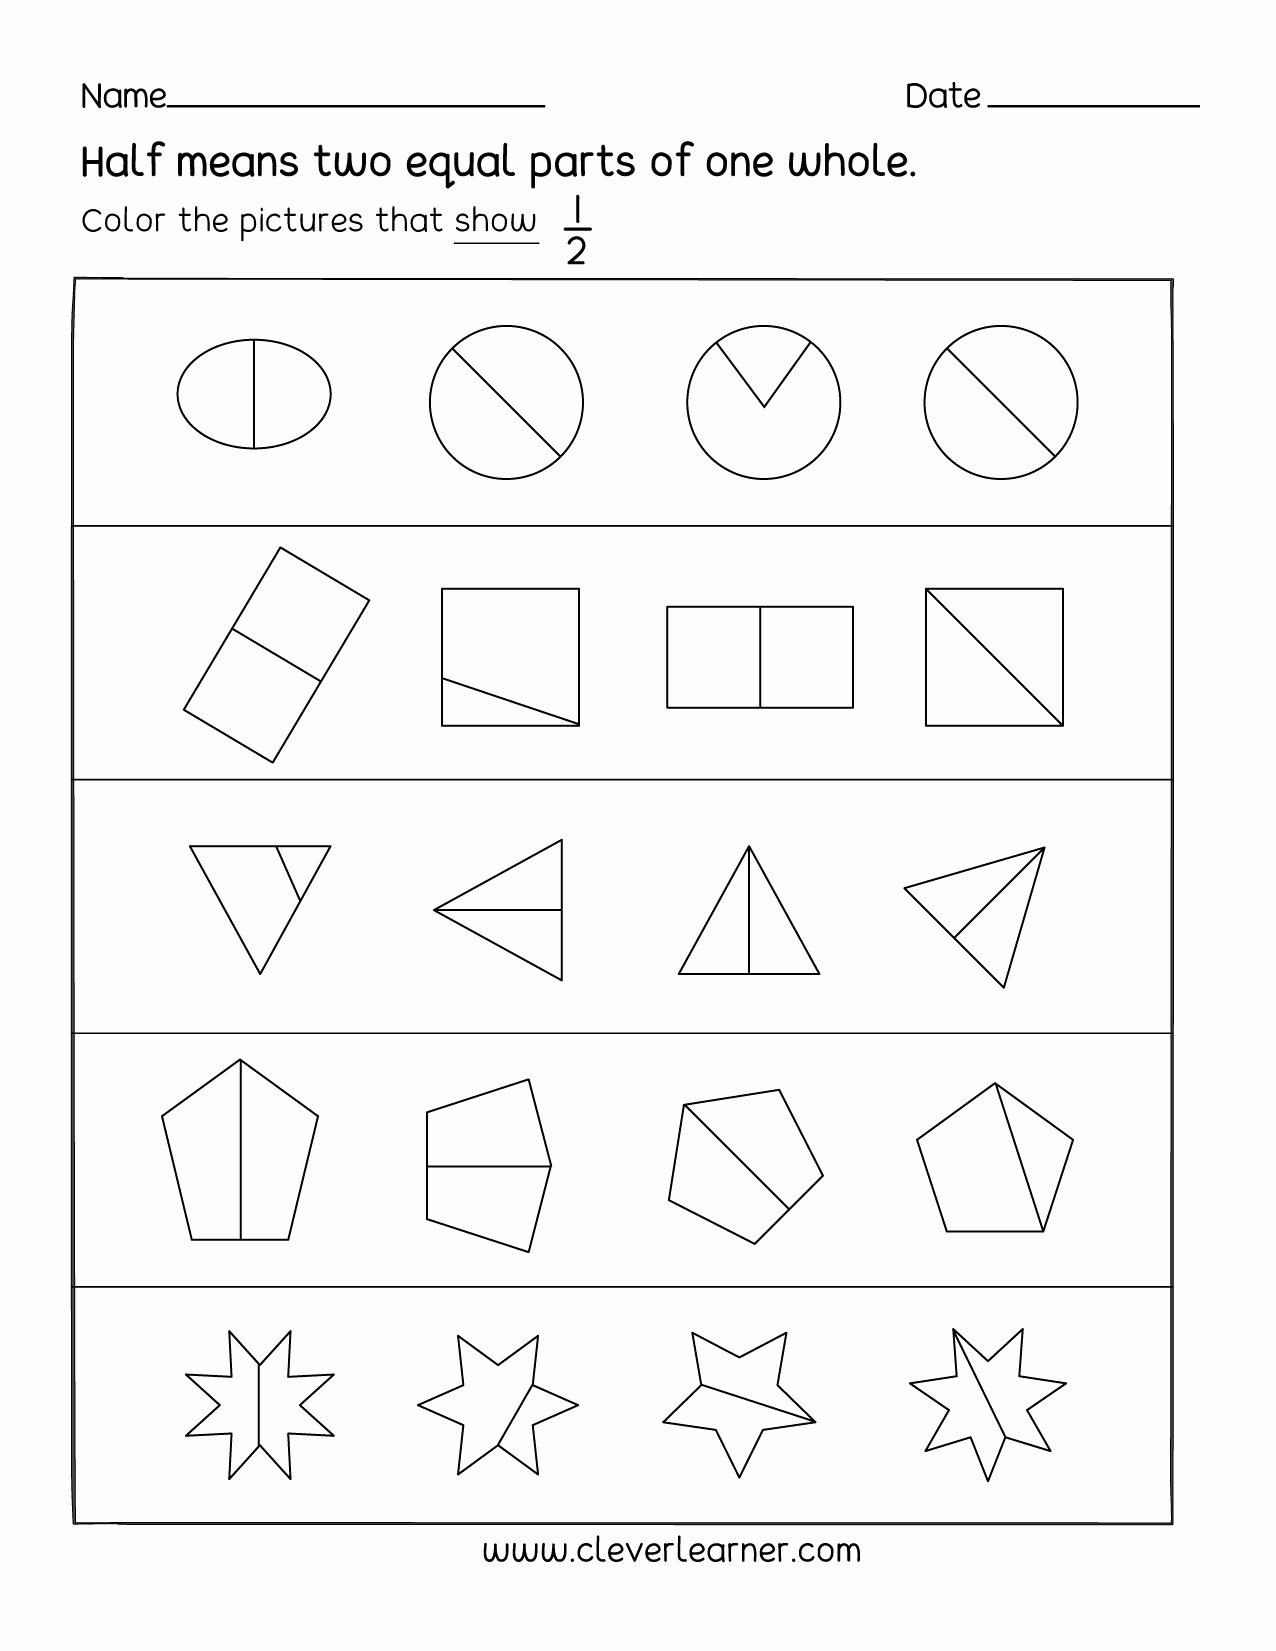 Activity Worksheets for Preschoolers Lovely Fun Activity On Fractions Half 1 2 Worksheets for Children